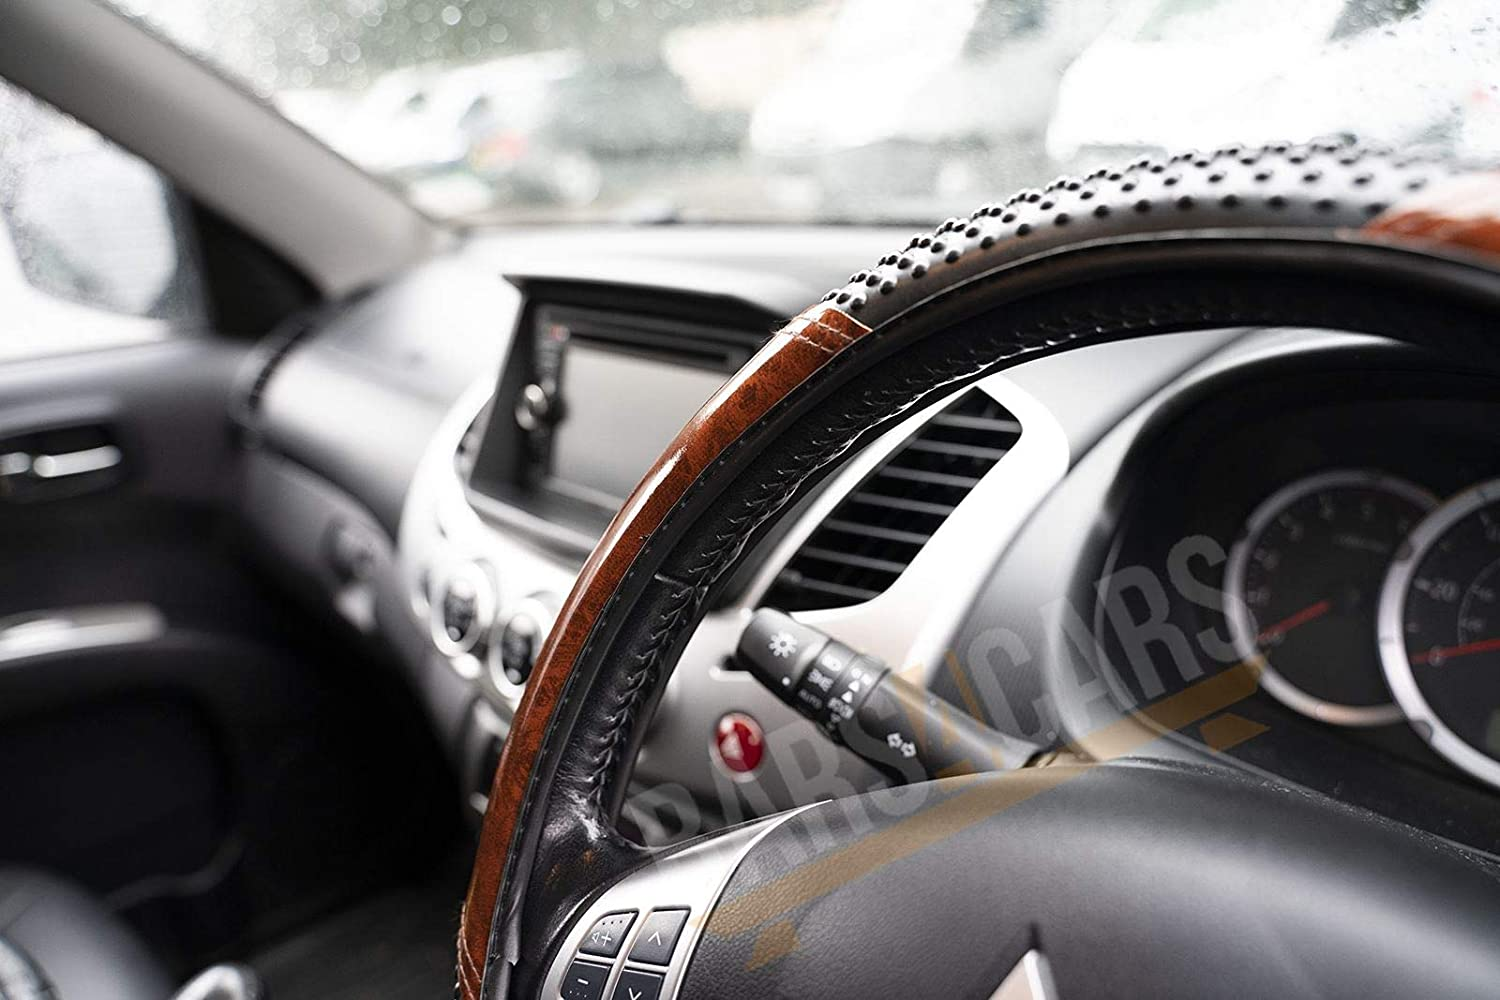 UKB4C Car Steering Wheel Cover Black /& Wood Look Effect fits Mercedes-Benz Cls All Yearas